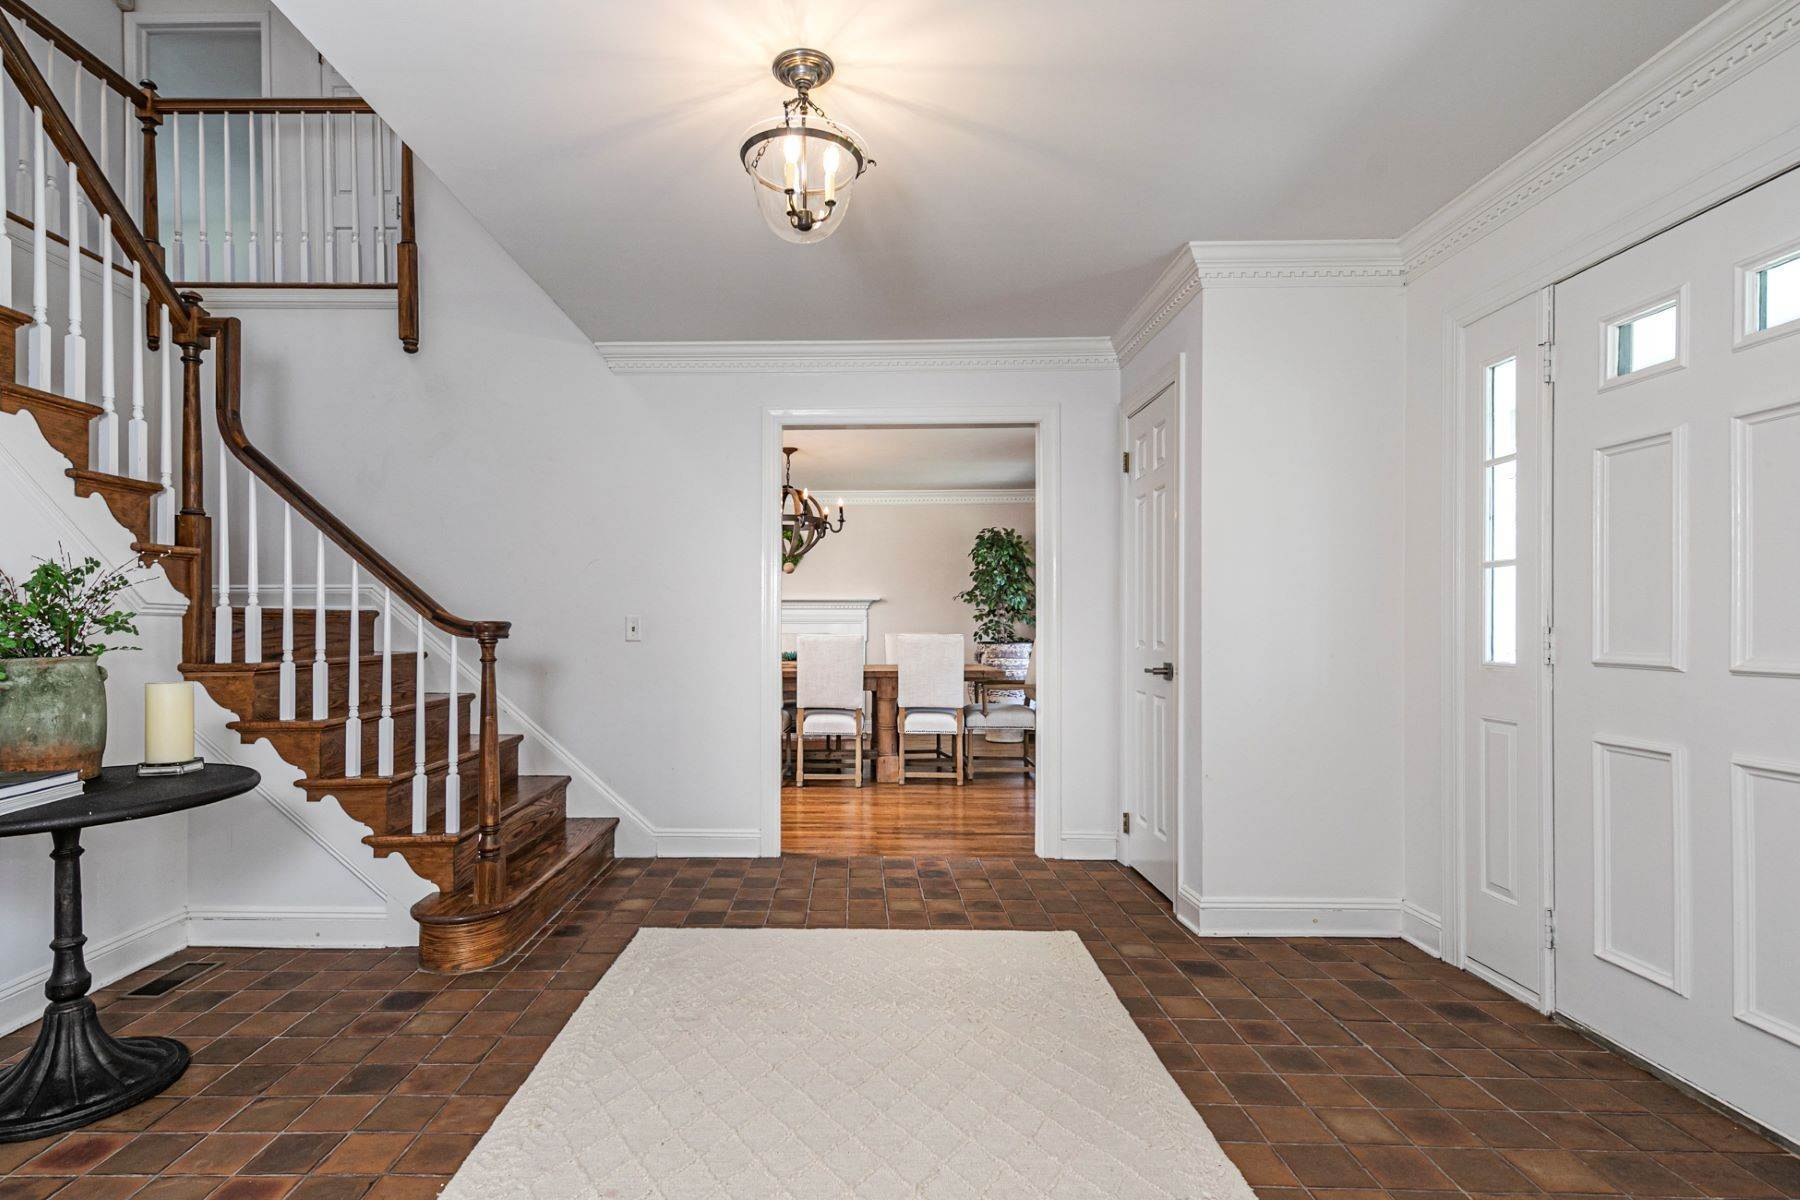 5. Single Family Homes for Sale at A New Kitchen And Updated Baths Make This Home Sparkle 91 West Shore Drive, Pennington, New Jersey 08534 United States